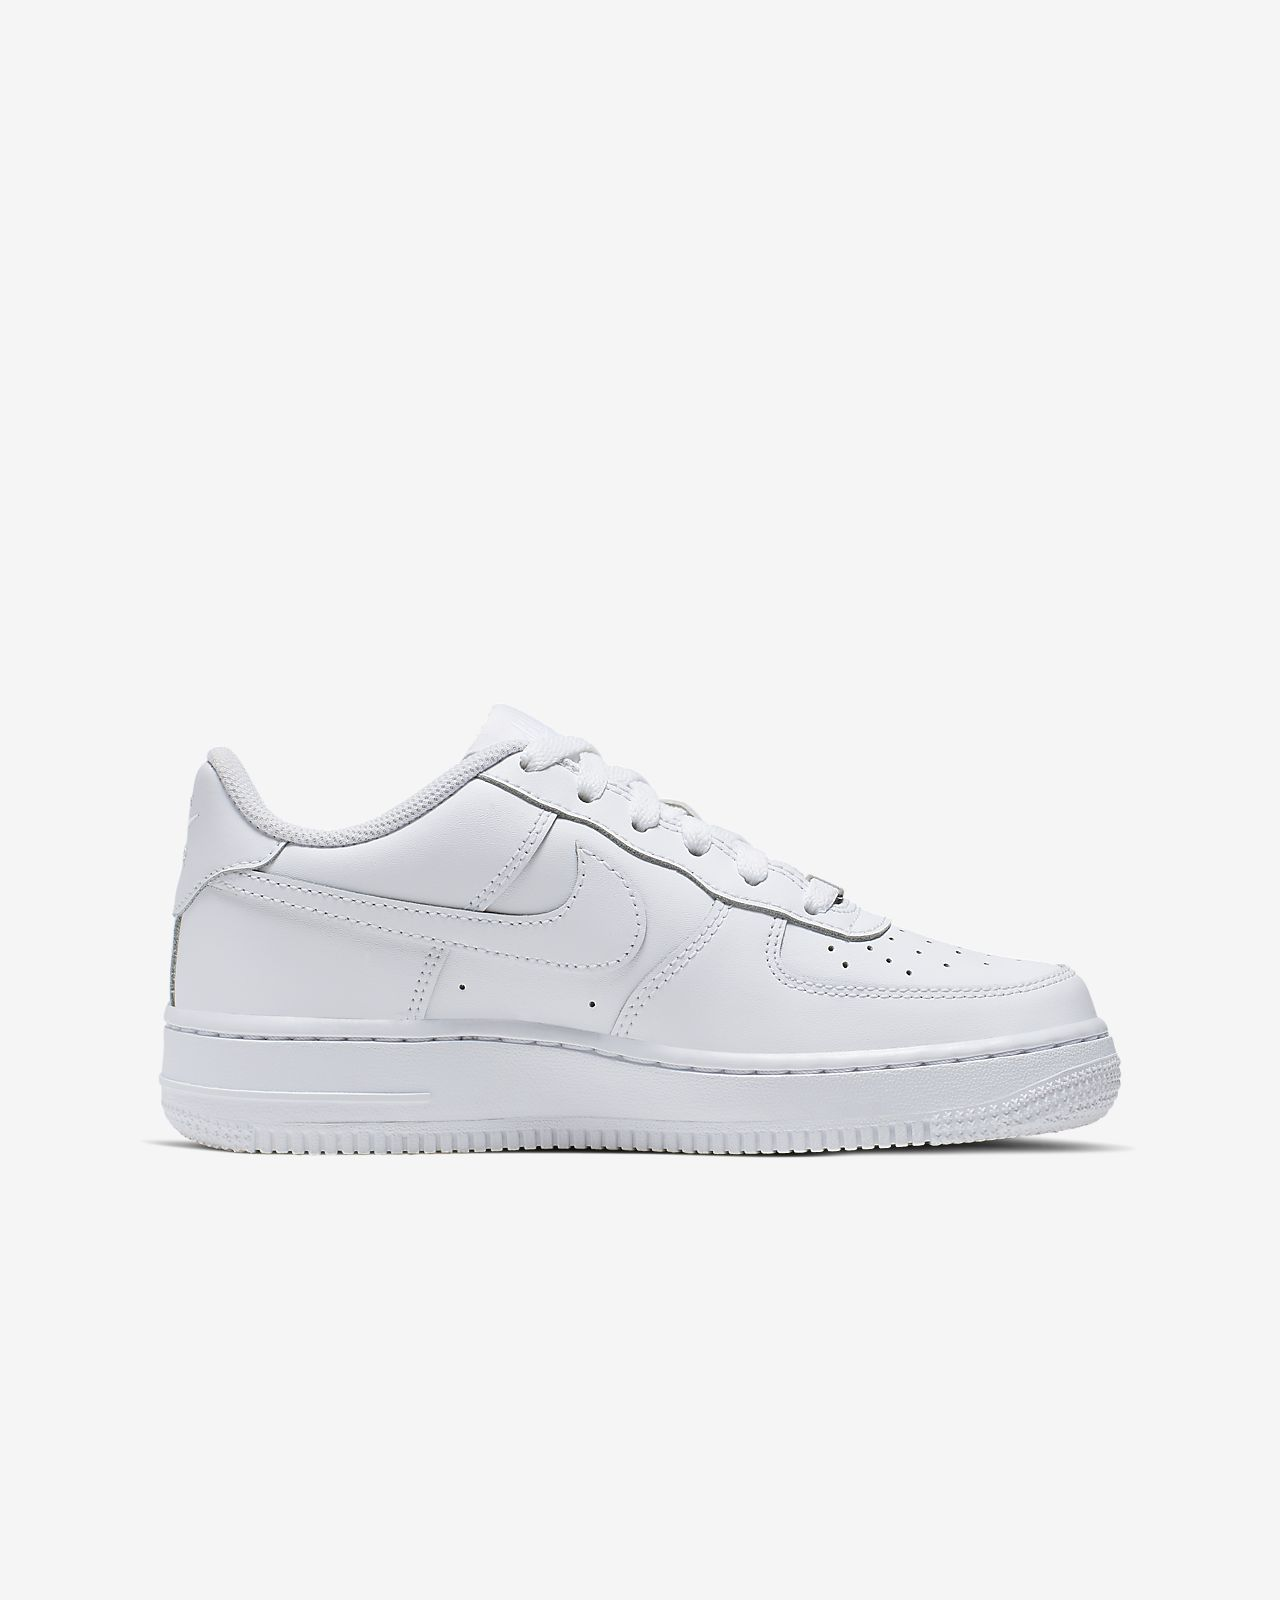 Nike Air Force 1 | Infant footwear (sizes 0 9) | Trainers